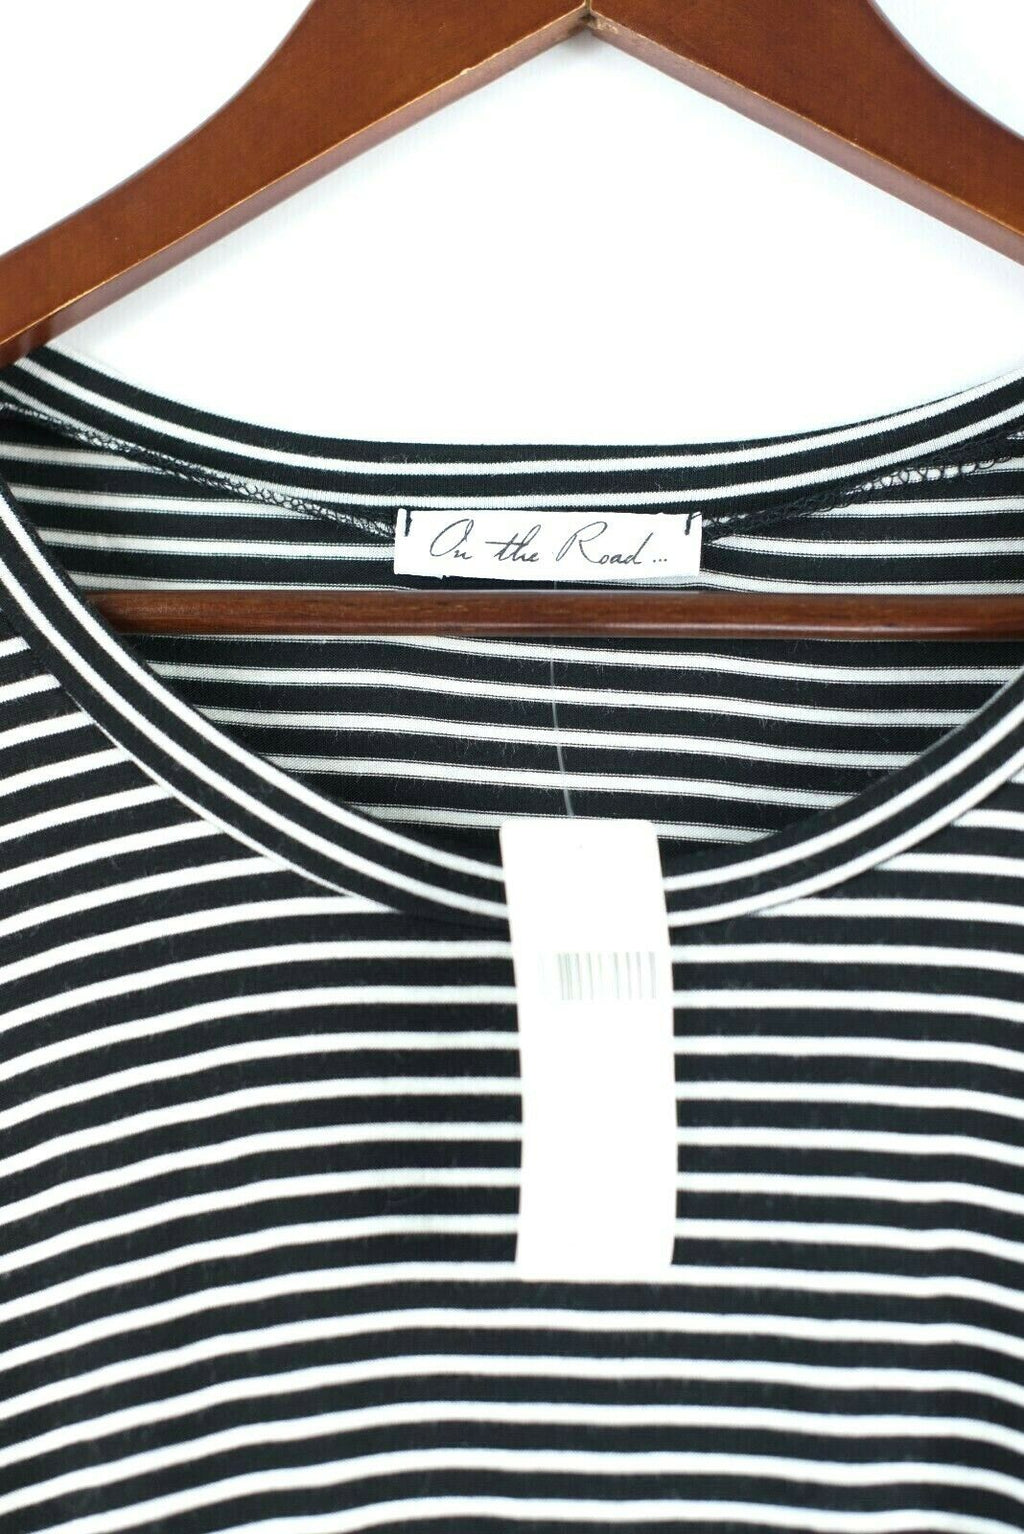 Anthropologie On The Road Womens Medium Black Tee Shirt Striped Pullover Top NWT